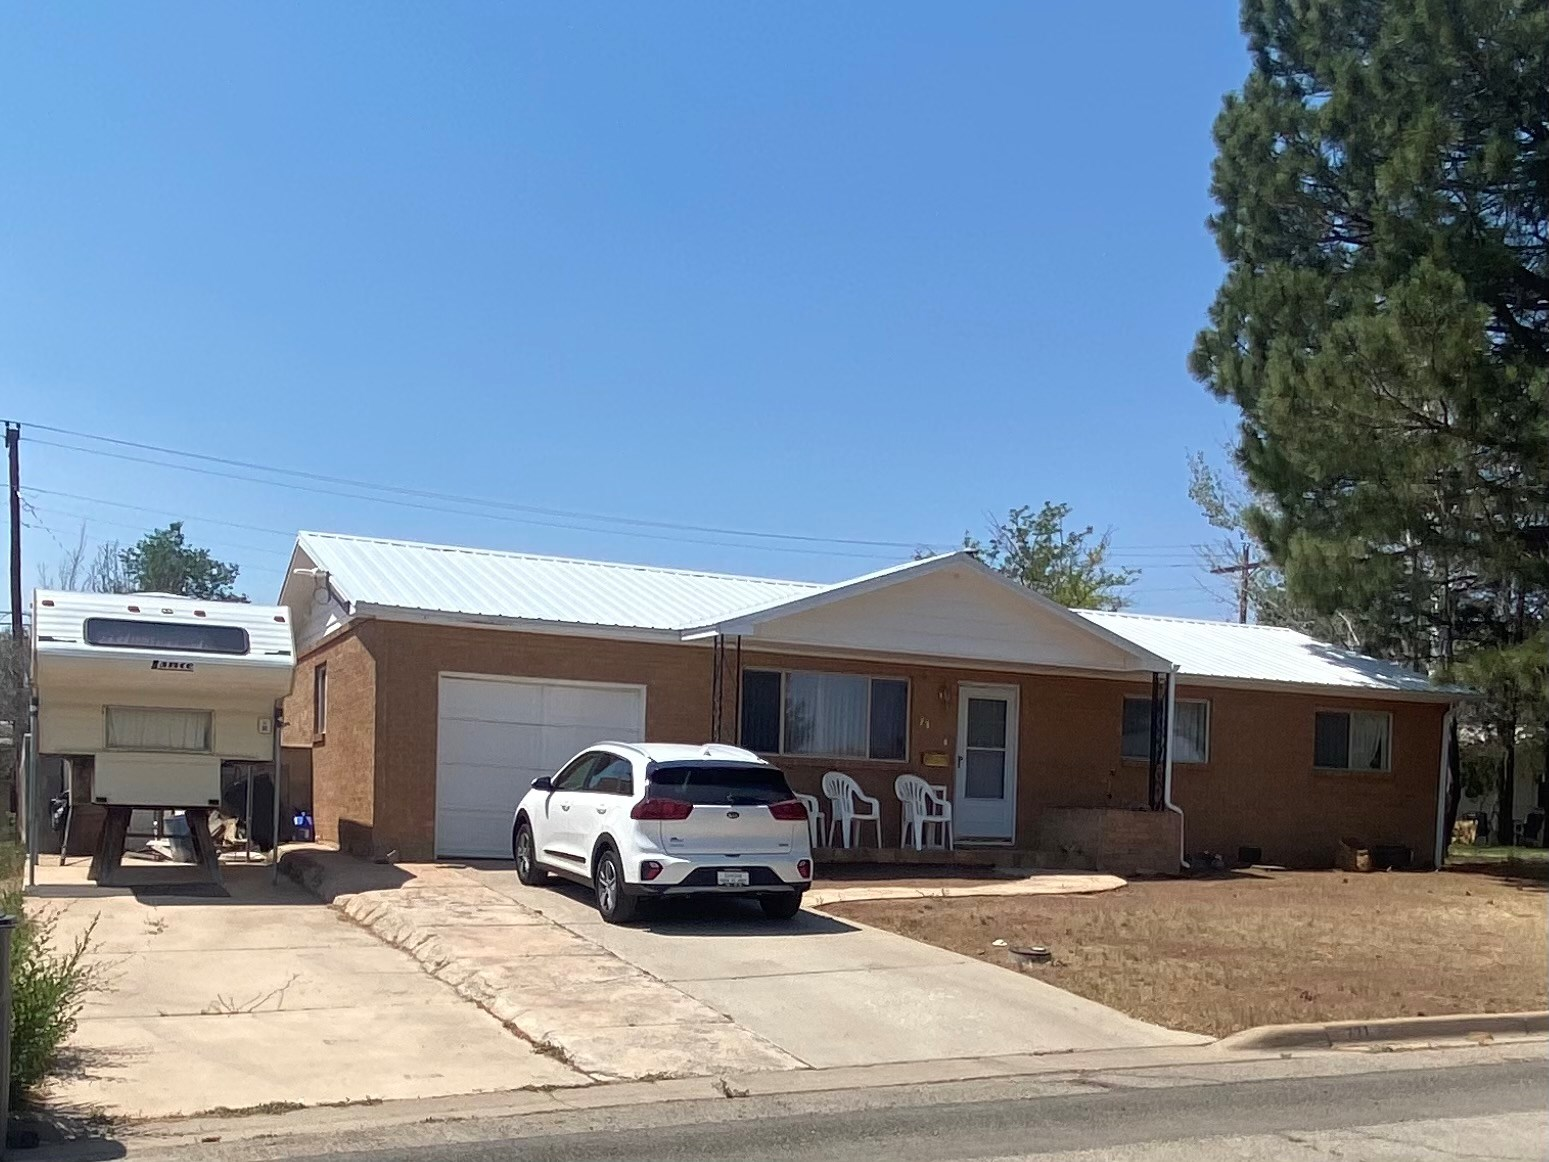 Home in Town For Sale in Cortez, Colorado!